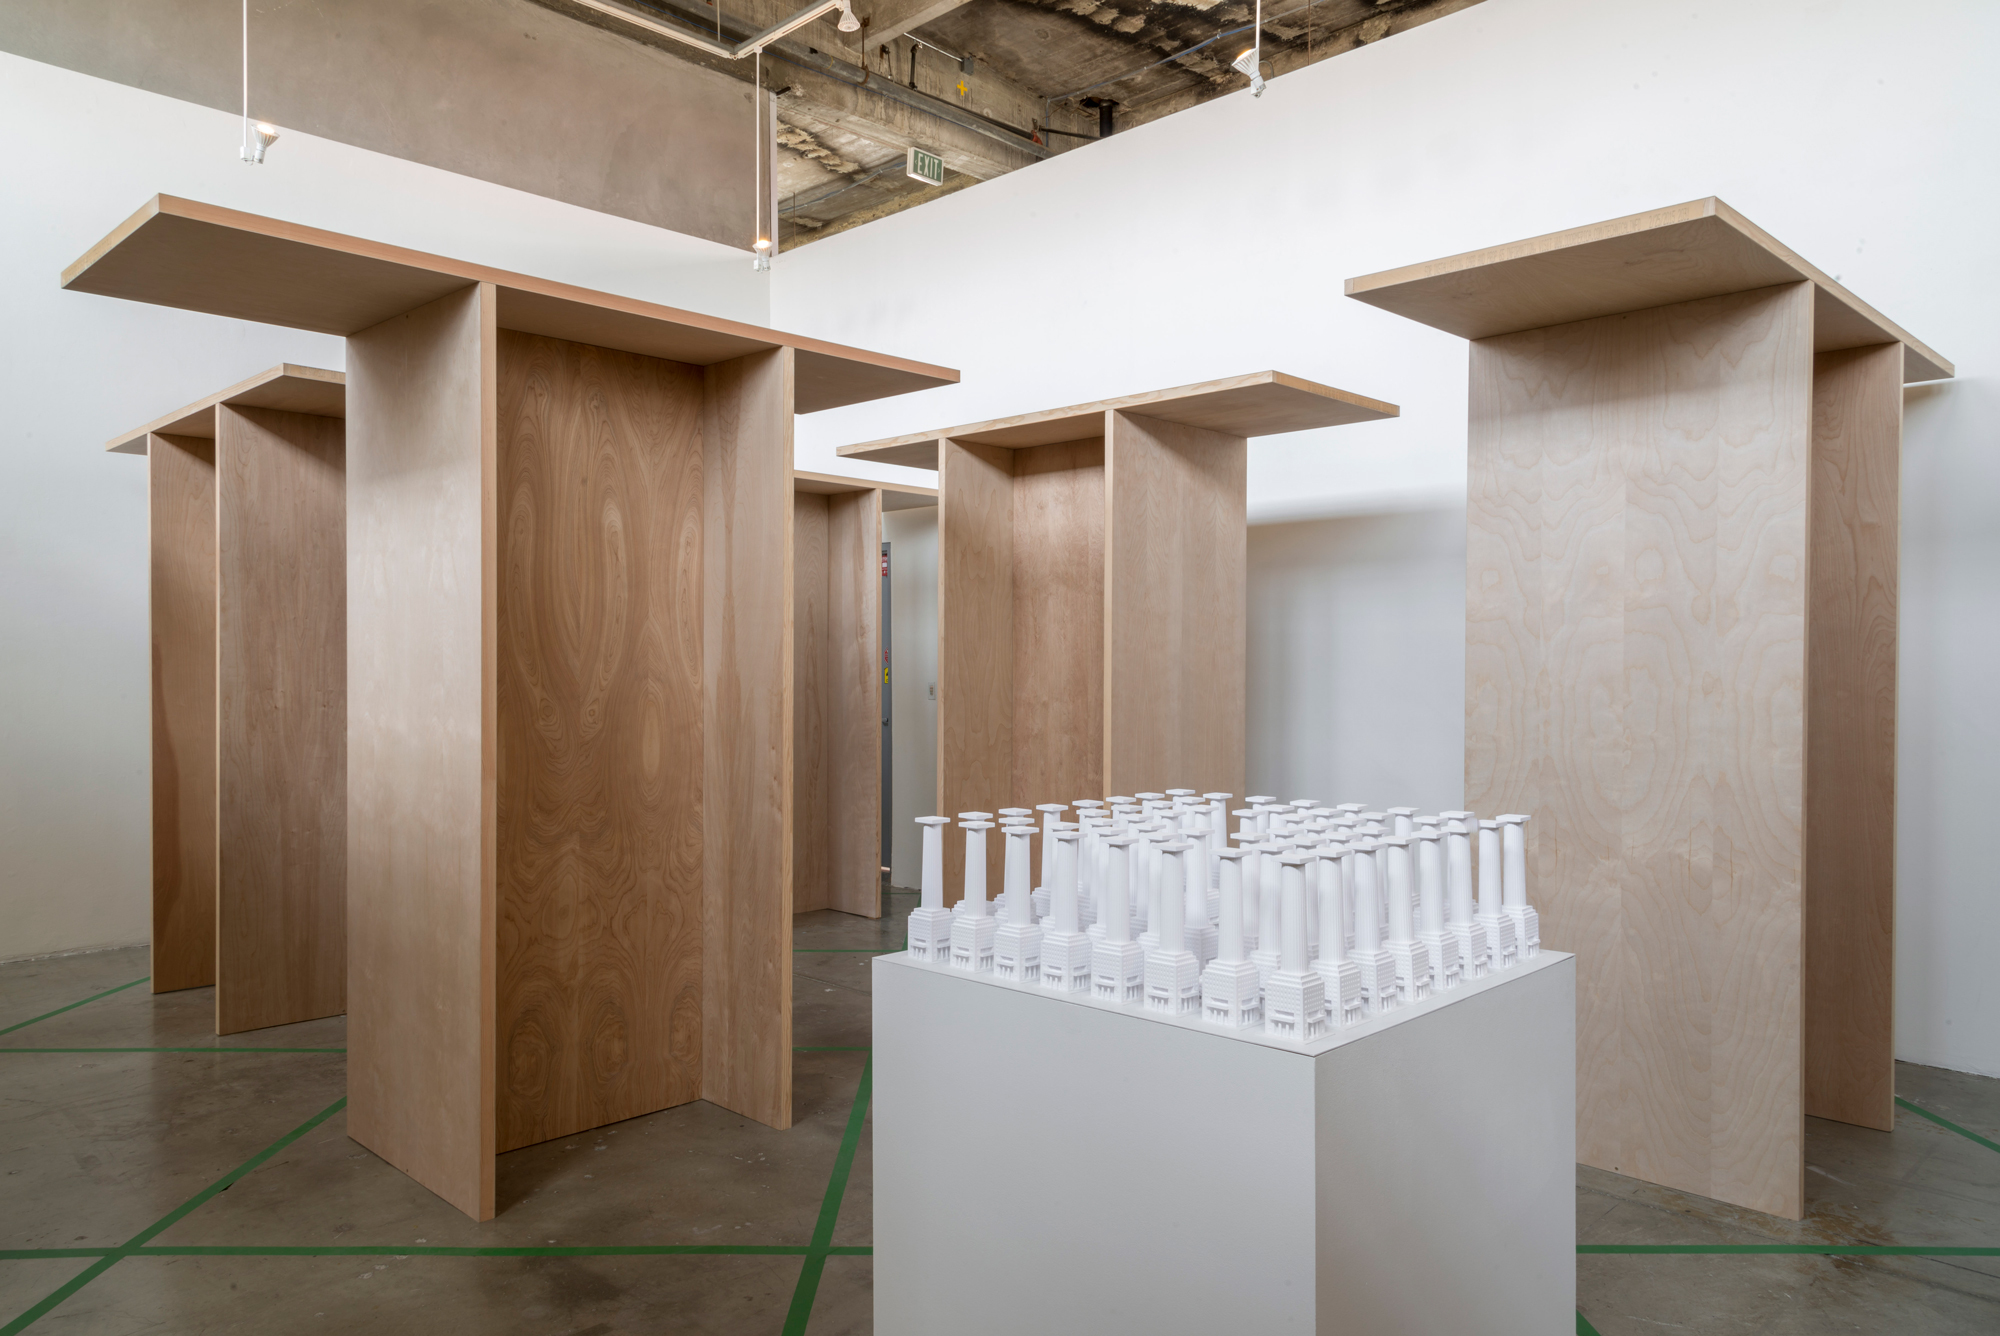 white architecture model in wooden structures art exhibition